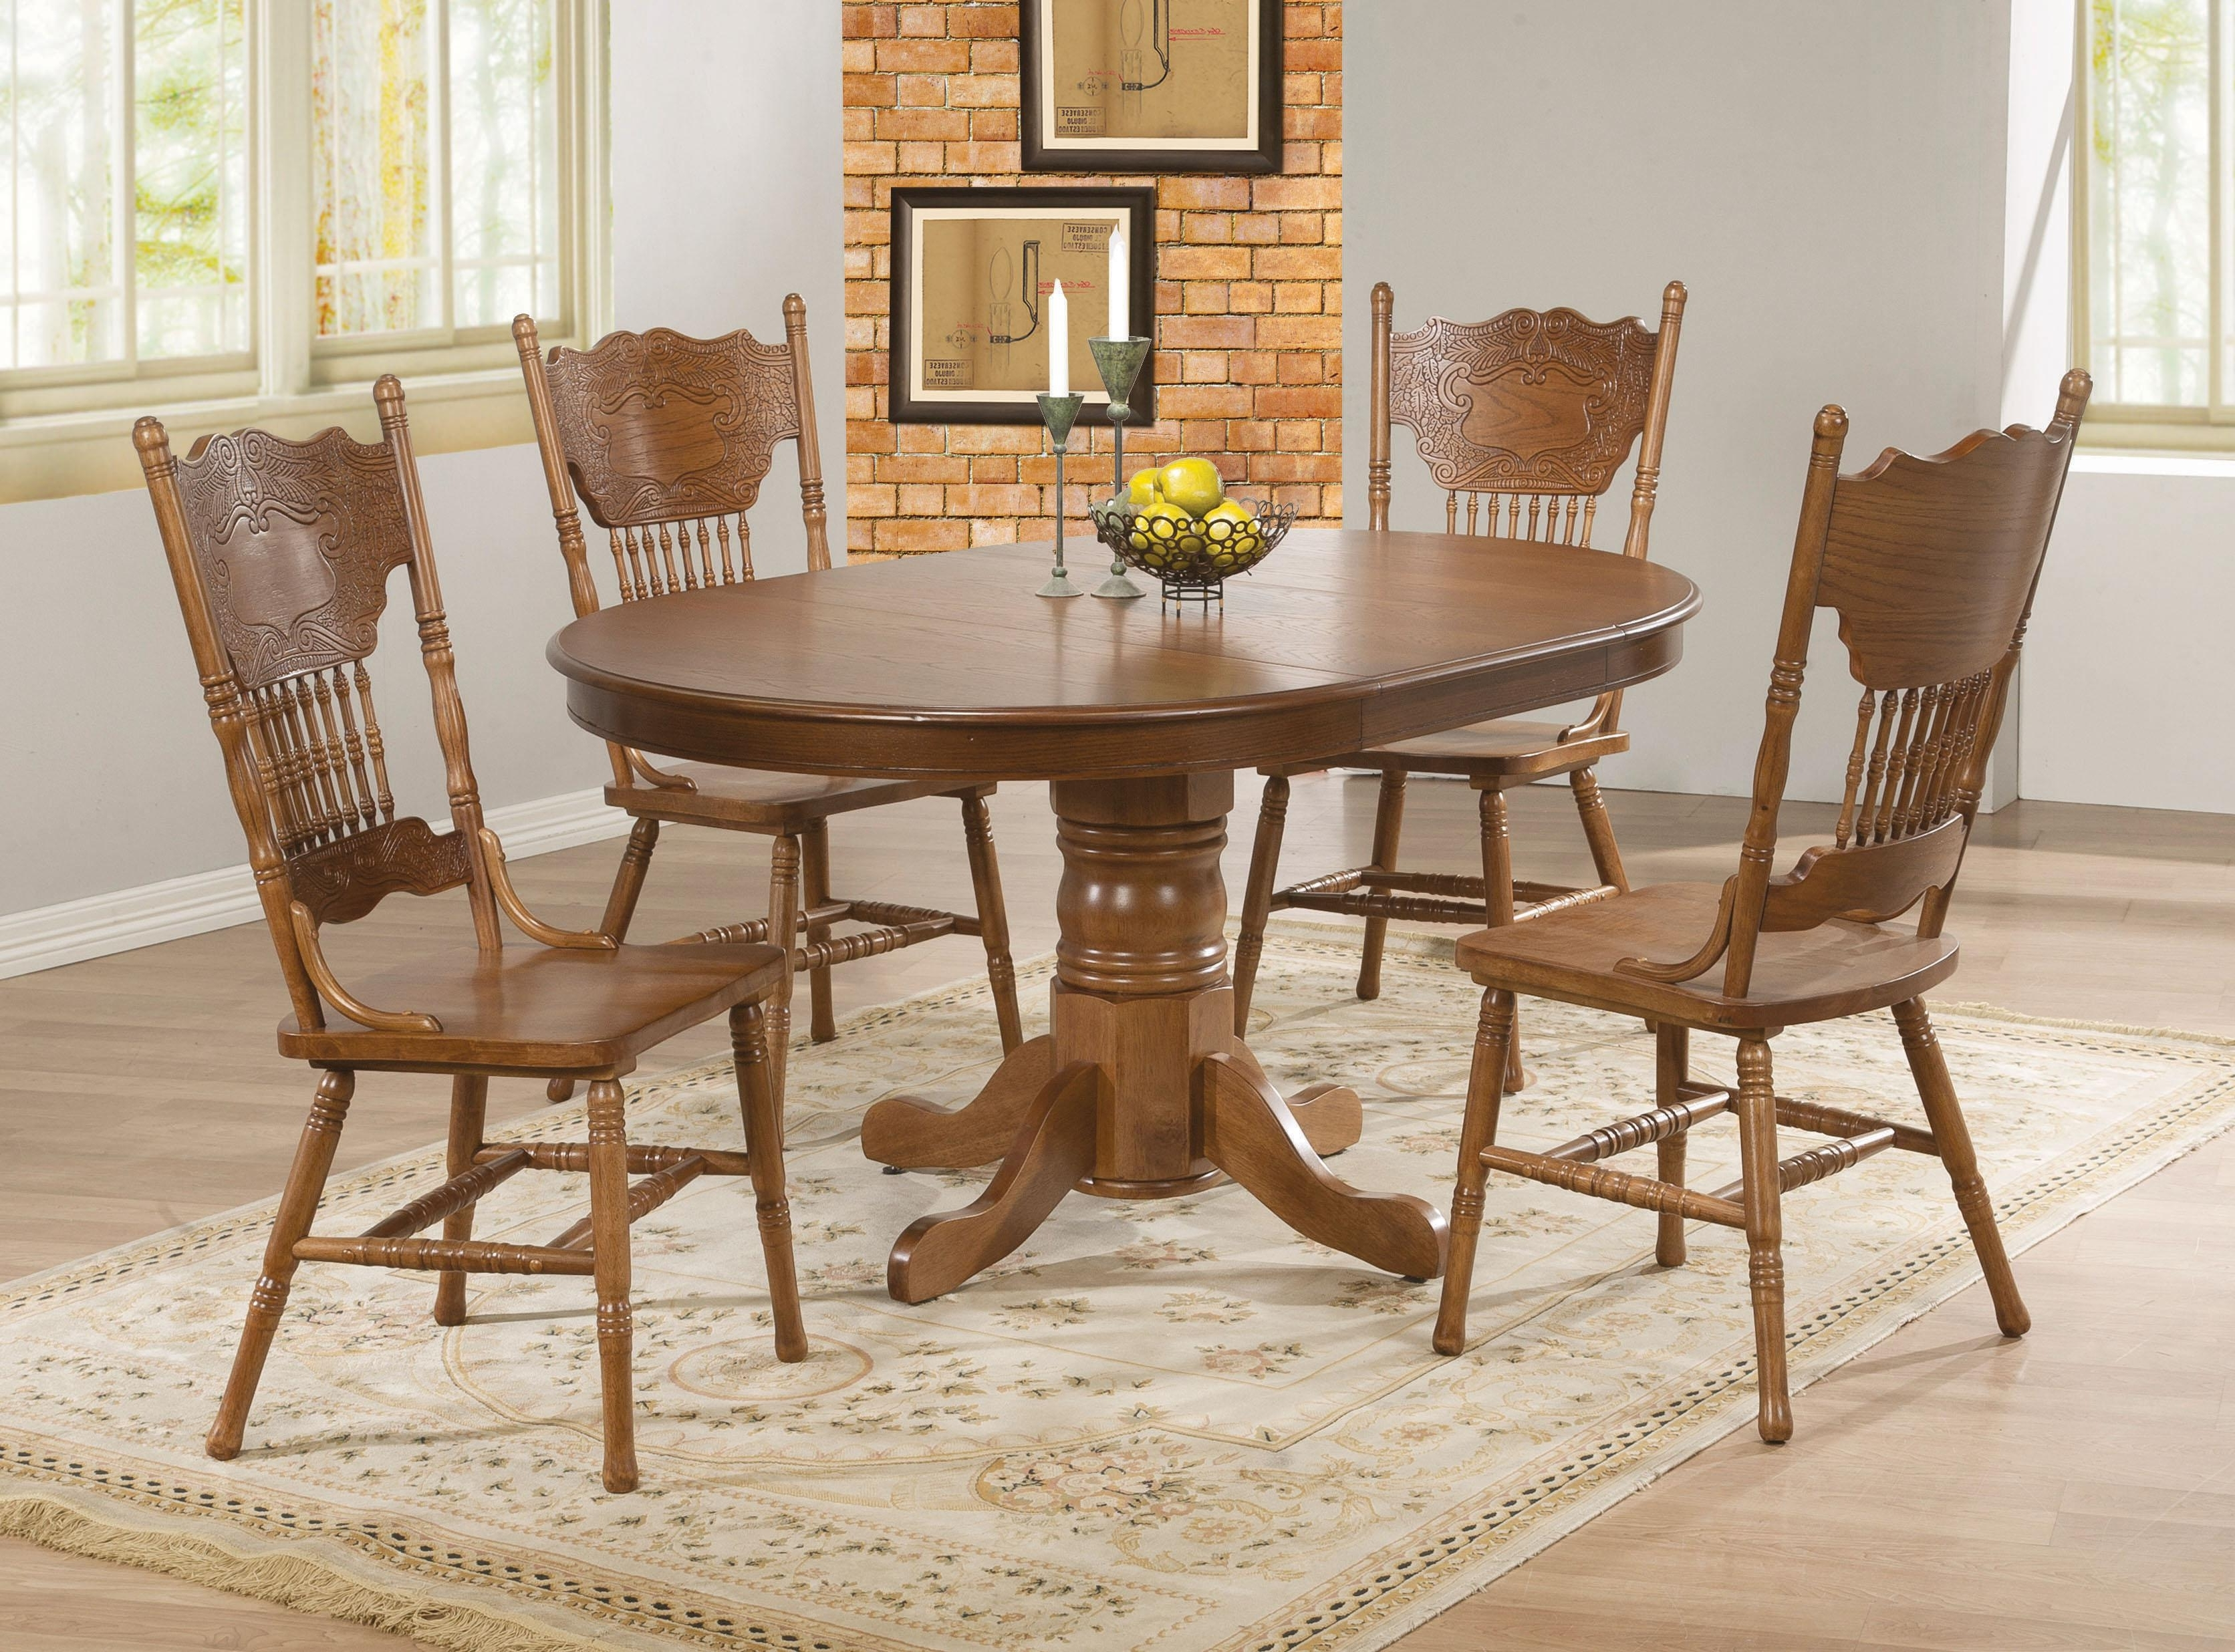 Preferred Round Dining Table Htm Oak Oval Dining Table And Chairs As Glass Within Glass And Oak Dining Tables And Chairs (View 16 of 25)